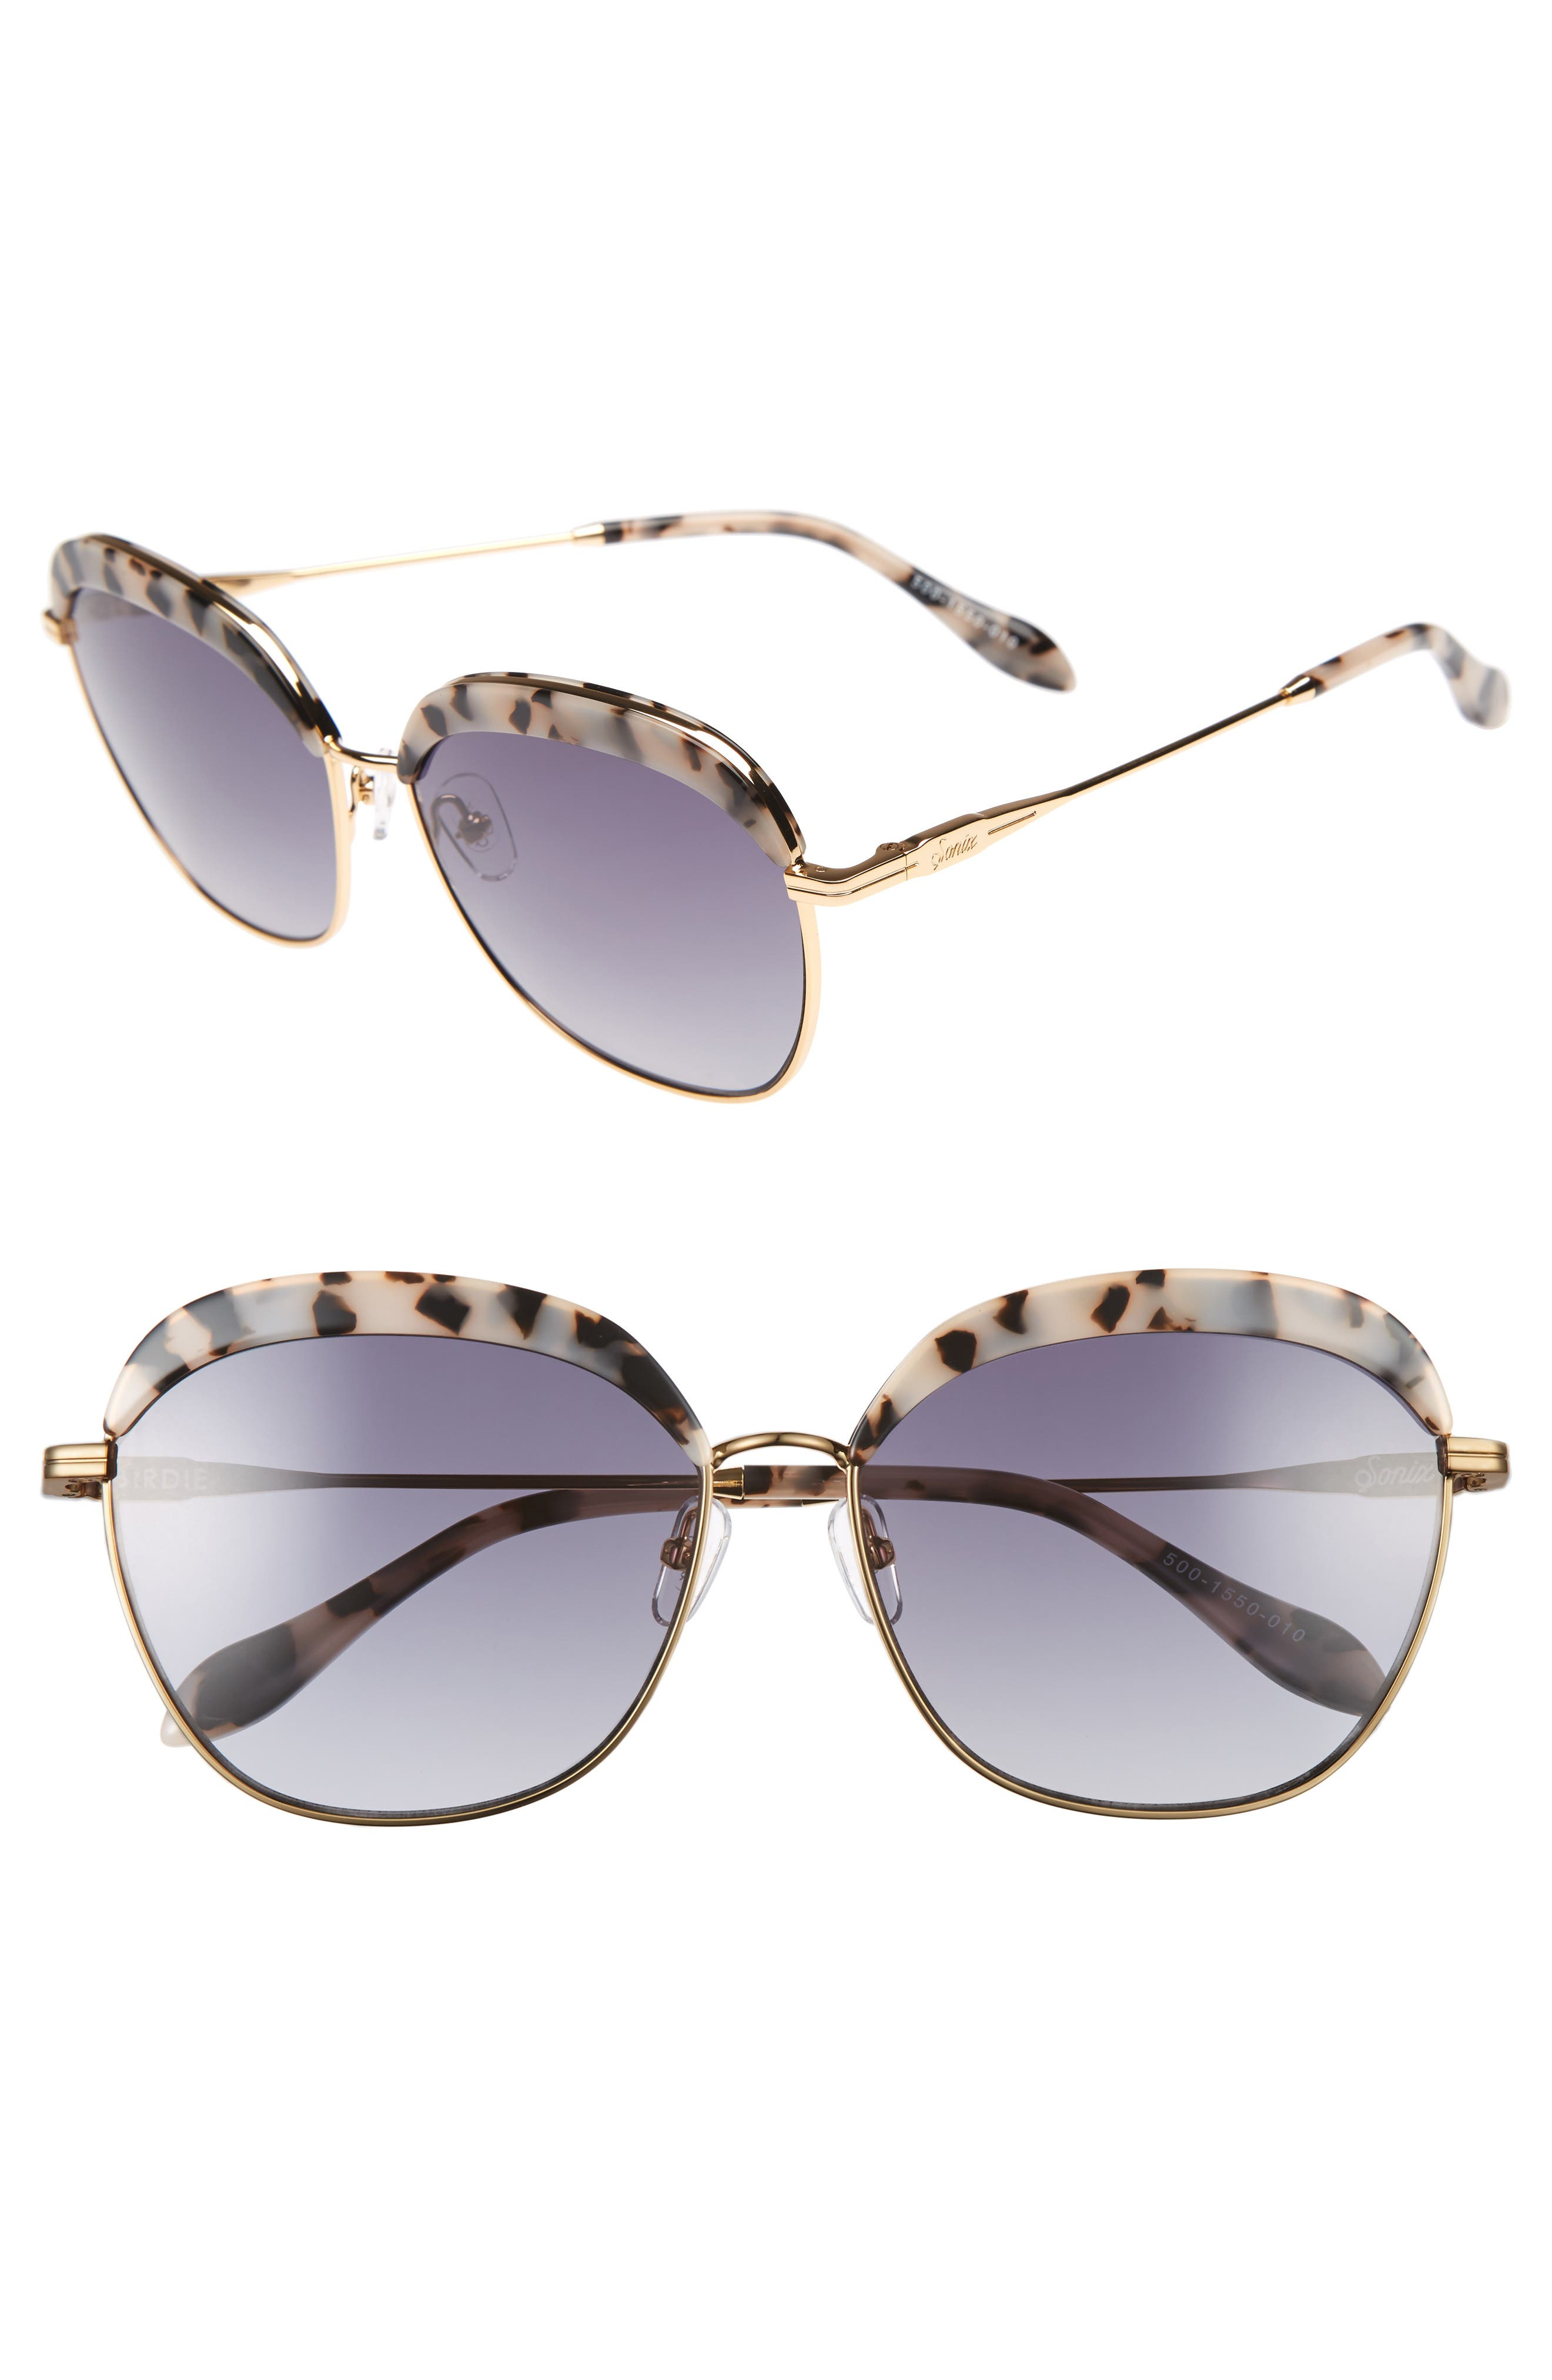 Birdie 60mm Oversize Sunglasses,                             Main thumbnail 1, color,                             200